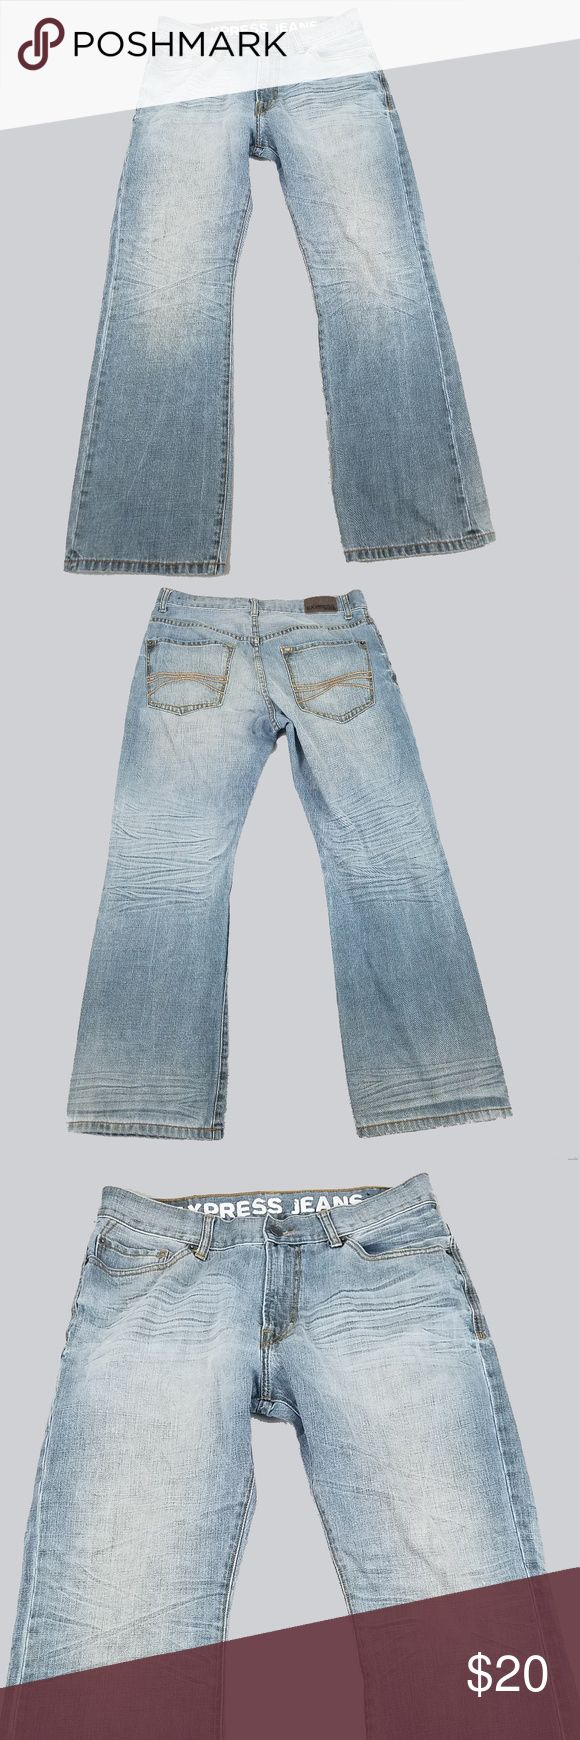 "Express Mens Jeans 34 30 Kingston Boot Cut Express Mens Jeans 34 30 Kingston Boot Cut Low Rise Light Distressed Cotton Excellent condition **actual inseam 29.5** Seam to seam across waist: 17"" Rise: 11"" Inseam: 29.5"" Top of waist to bottom (length): 39"" Express Jeans Bootcut #mensjeansbootcut"